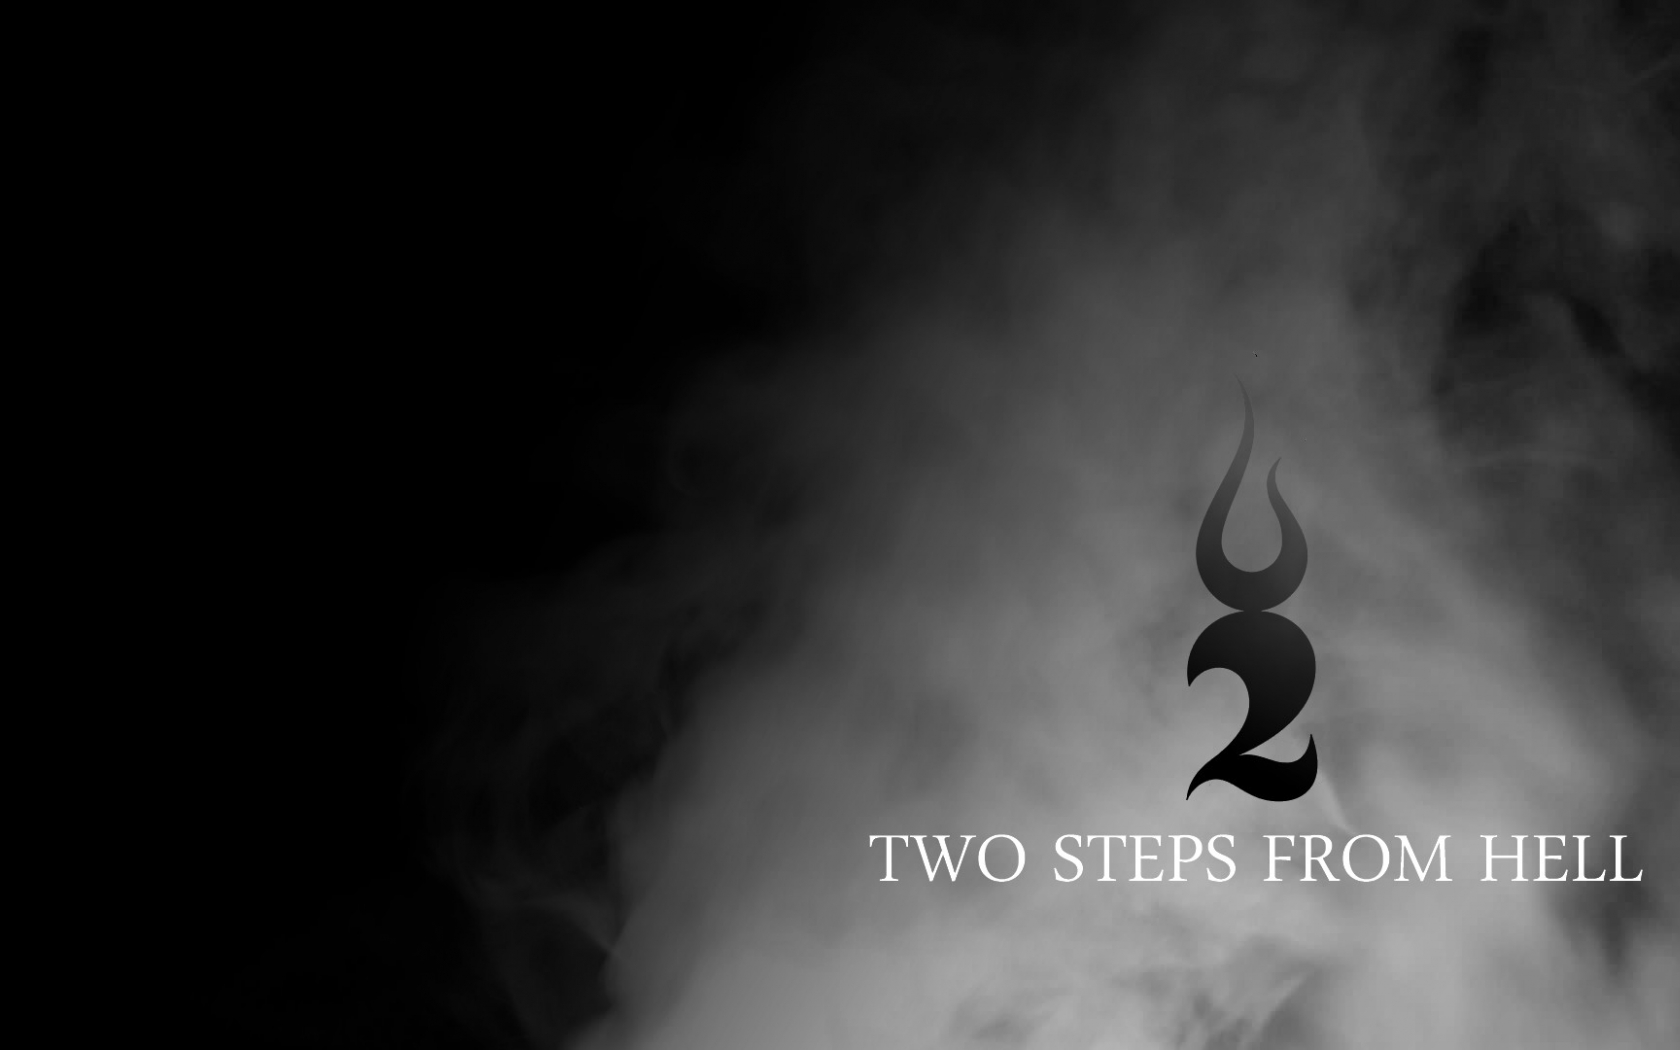 Free Download Two Steps From Hell Wallpaper By Xxjoracoxx